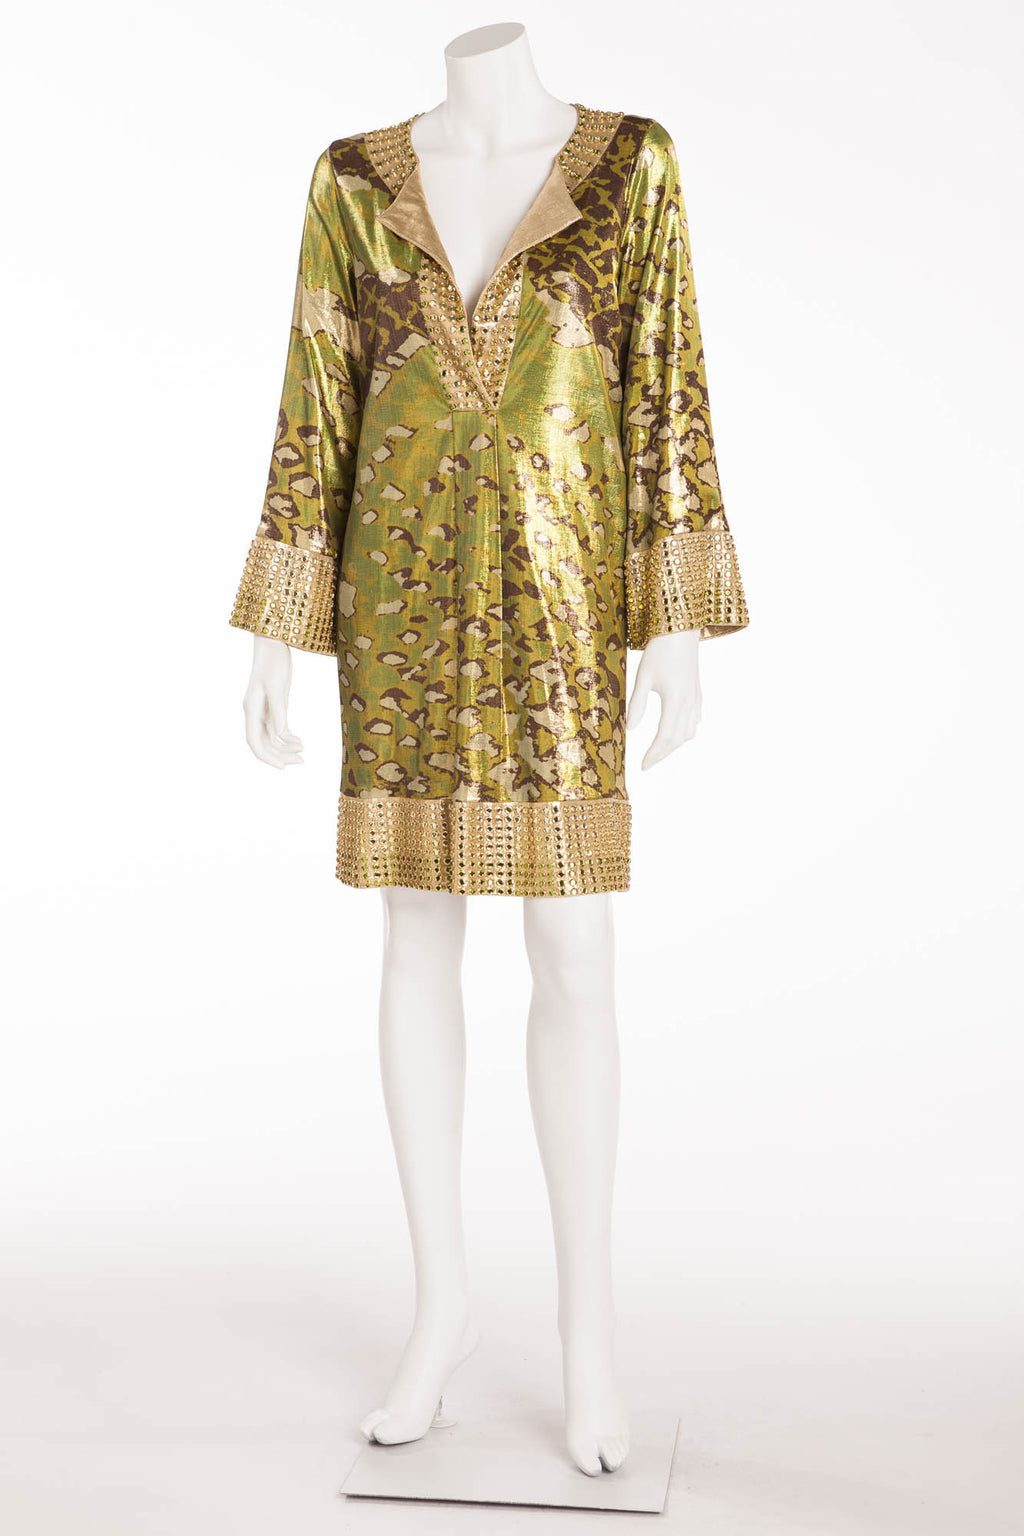 Diane Von Furstenburg - Green Metallic Leopard Green Print Rhinestone Dress  - US 6